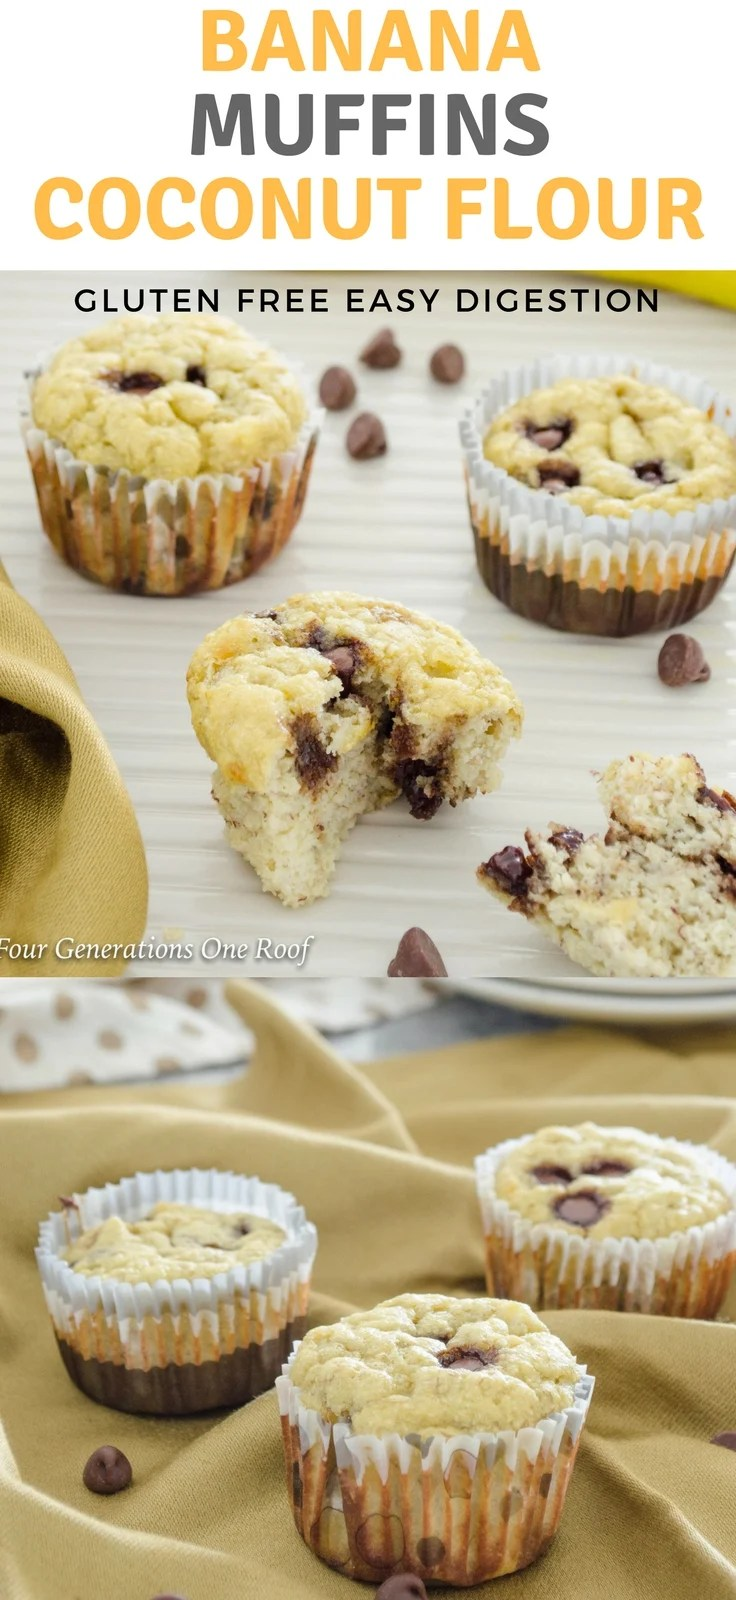 What is Coconut Flour & Why Use | Coconut Flour Banana Muffins with Chocolate Chips